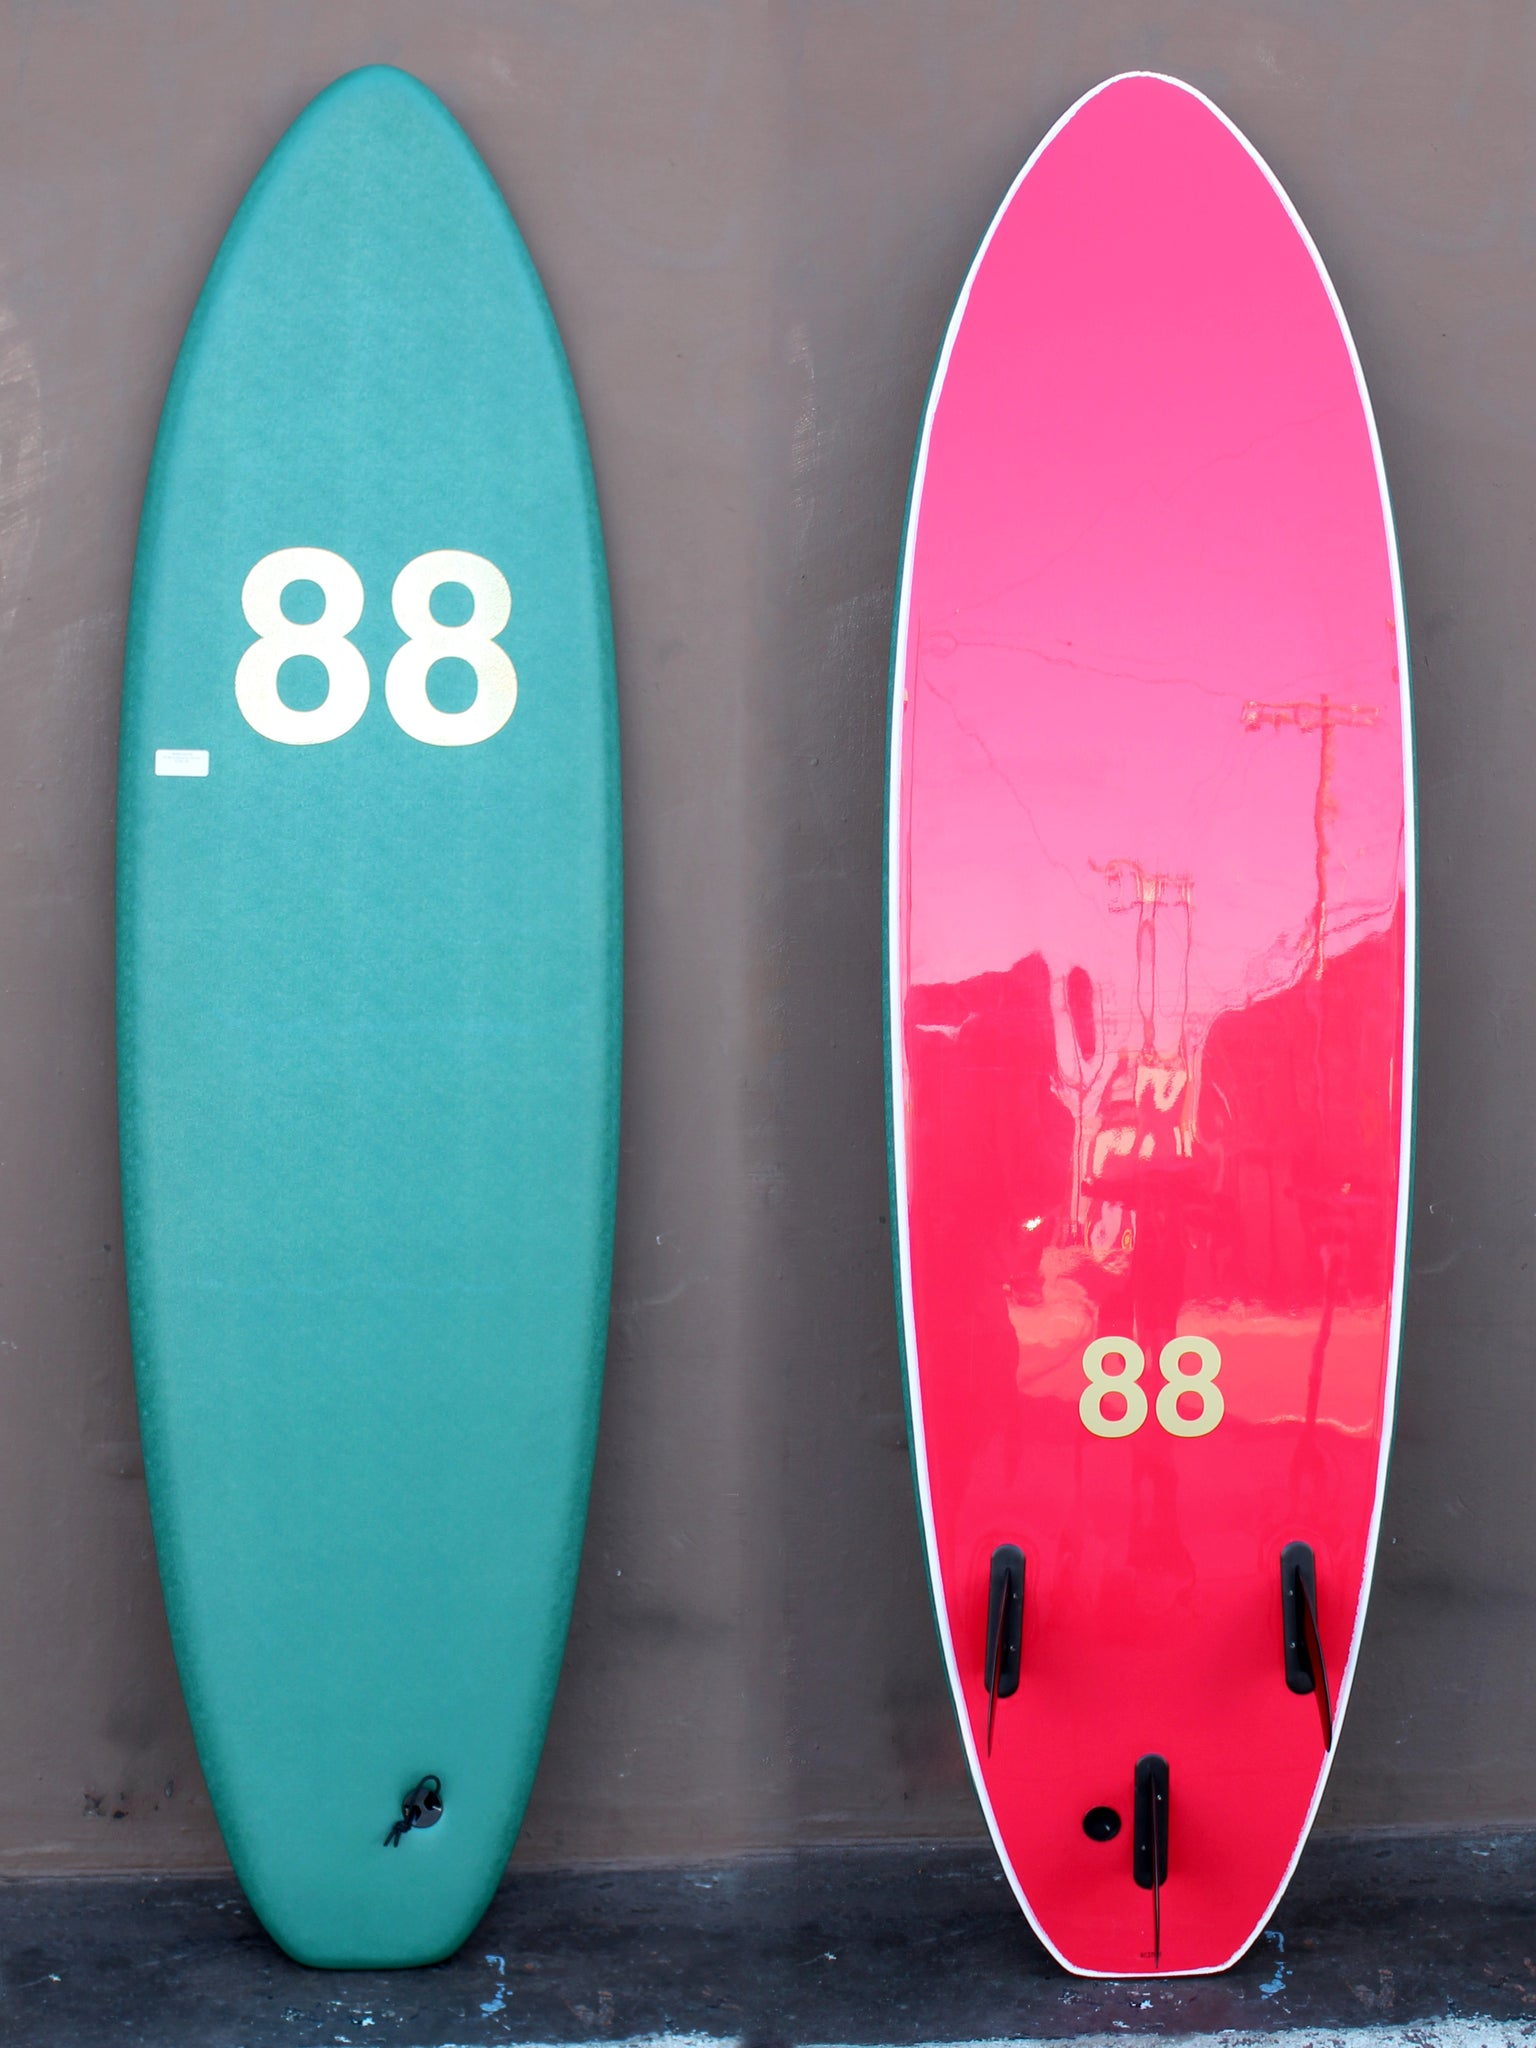 6'6 88 Surfboards